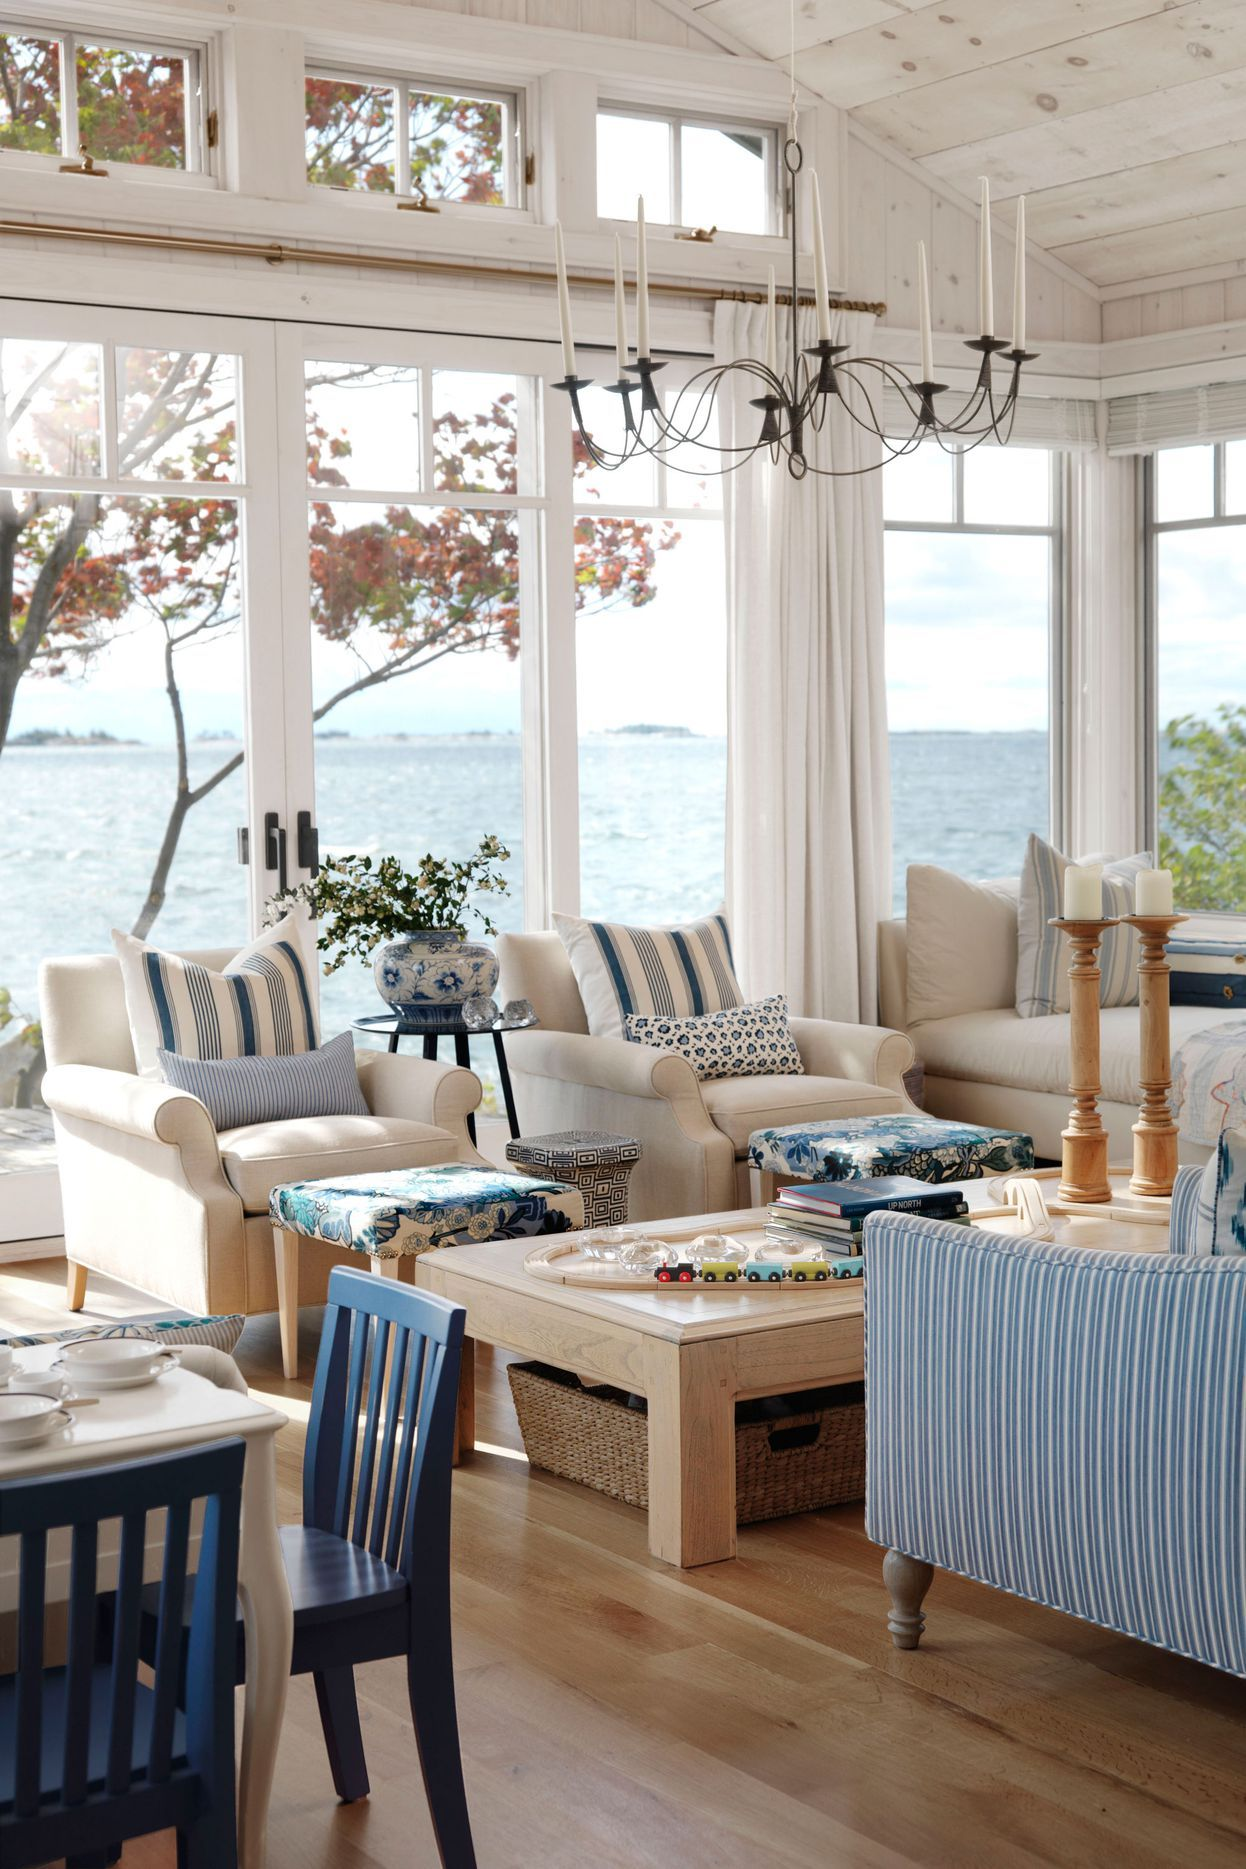 Bring Beach Vibes Into Any Home With These Decor Ideas Coastal